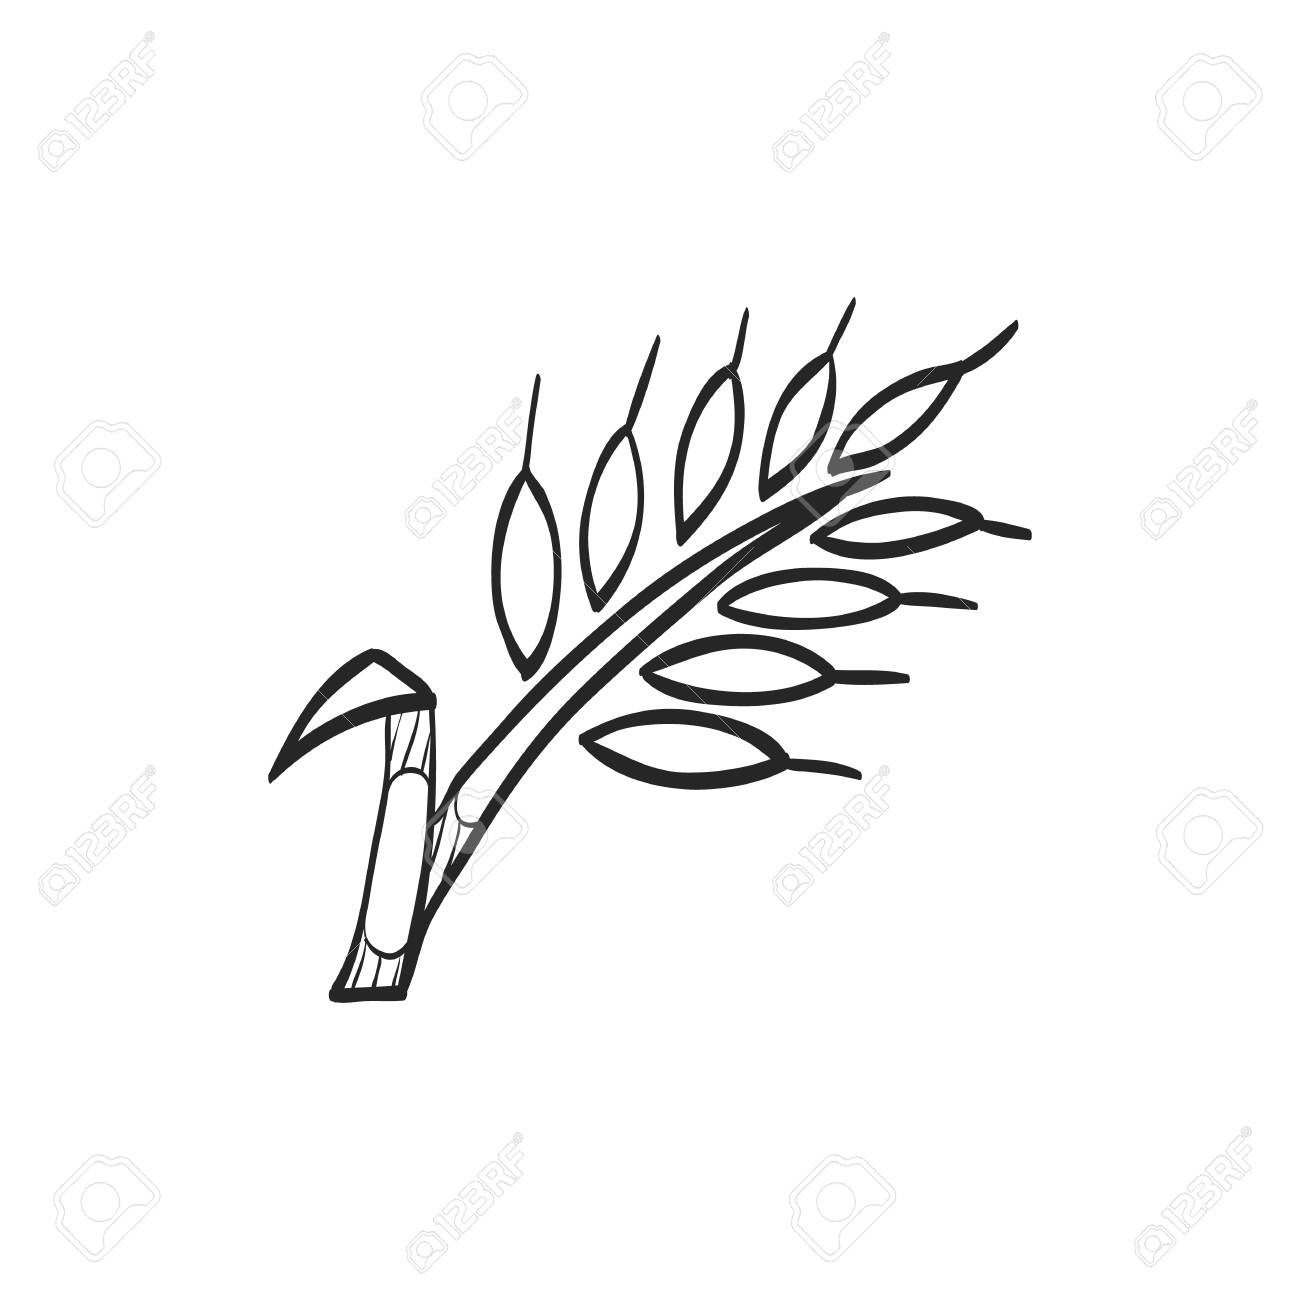 1300x1300 Wheat Icon In Doodle Sketch Lines. Cereal Seeds Baking Gluten